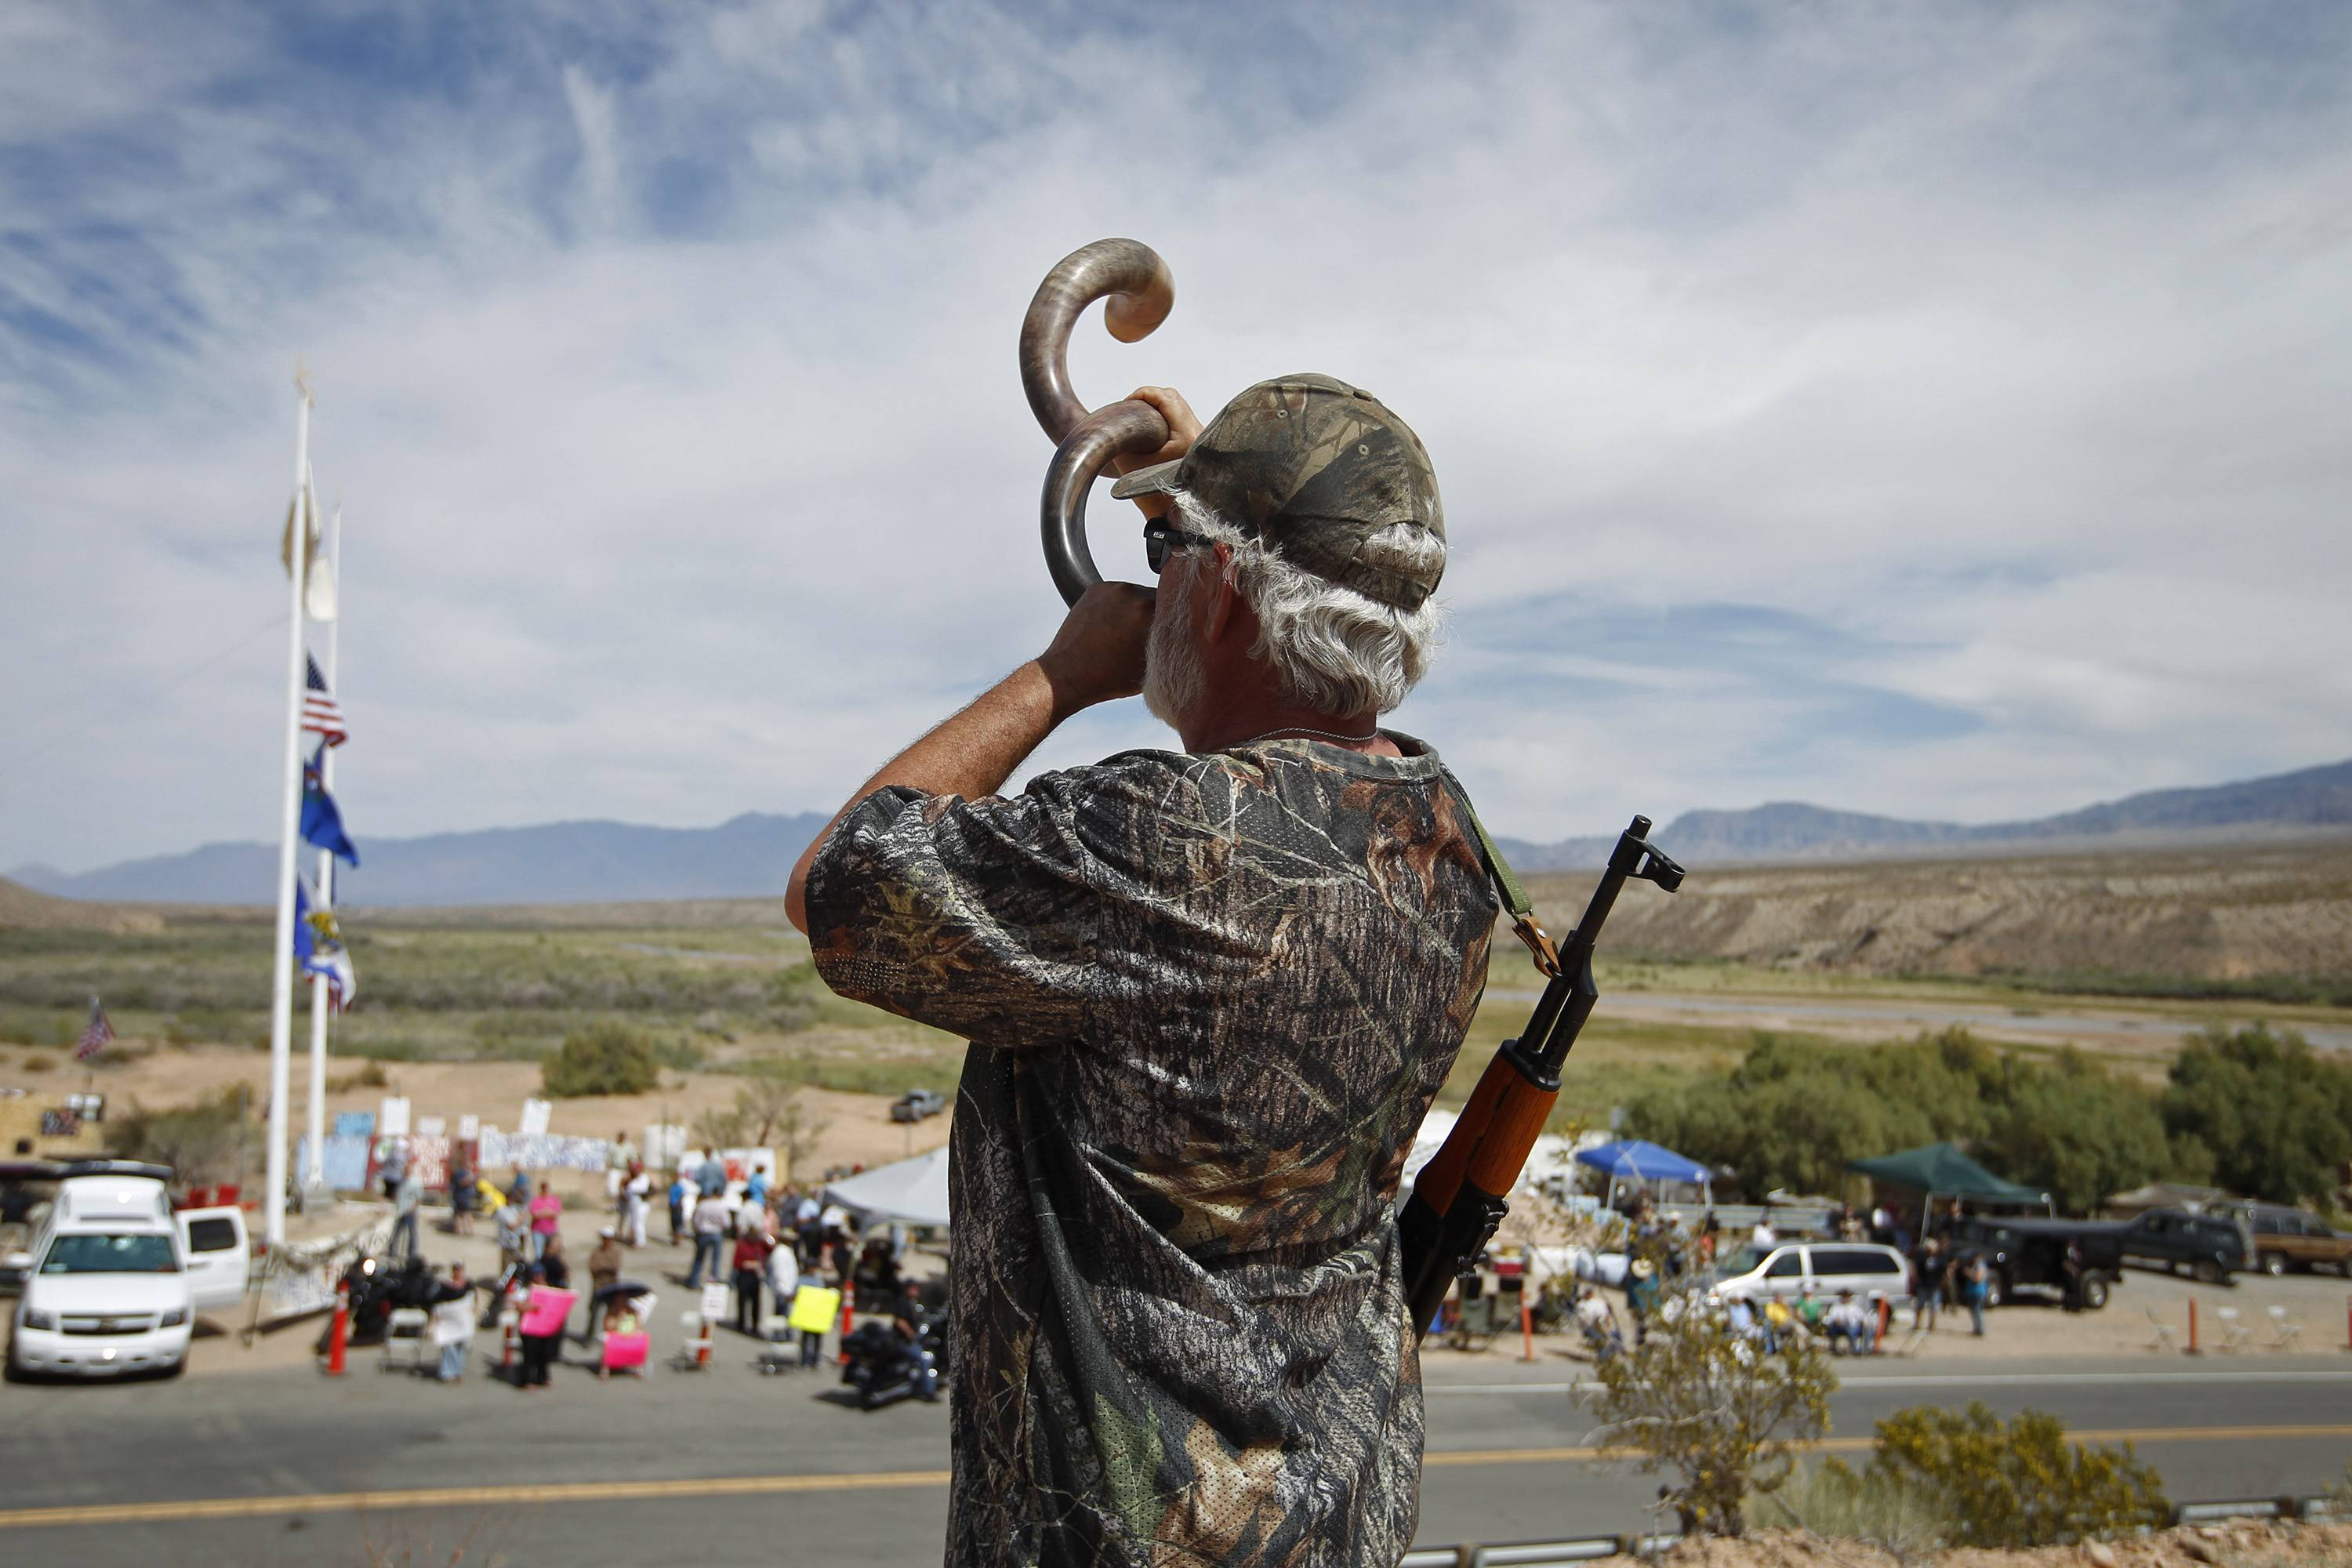 Brand Thornton, of Las Vegas, blows a shofar Friday on a hillside above a protest area near Bunkerville, Nev.